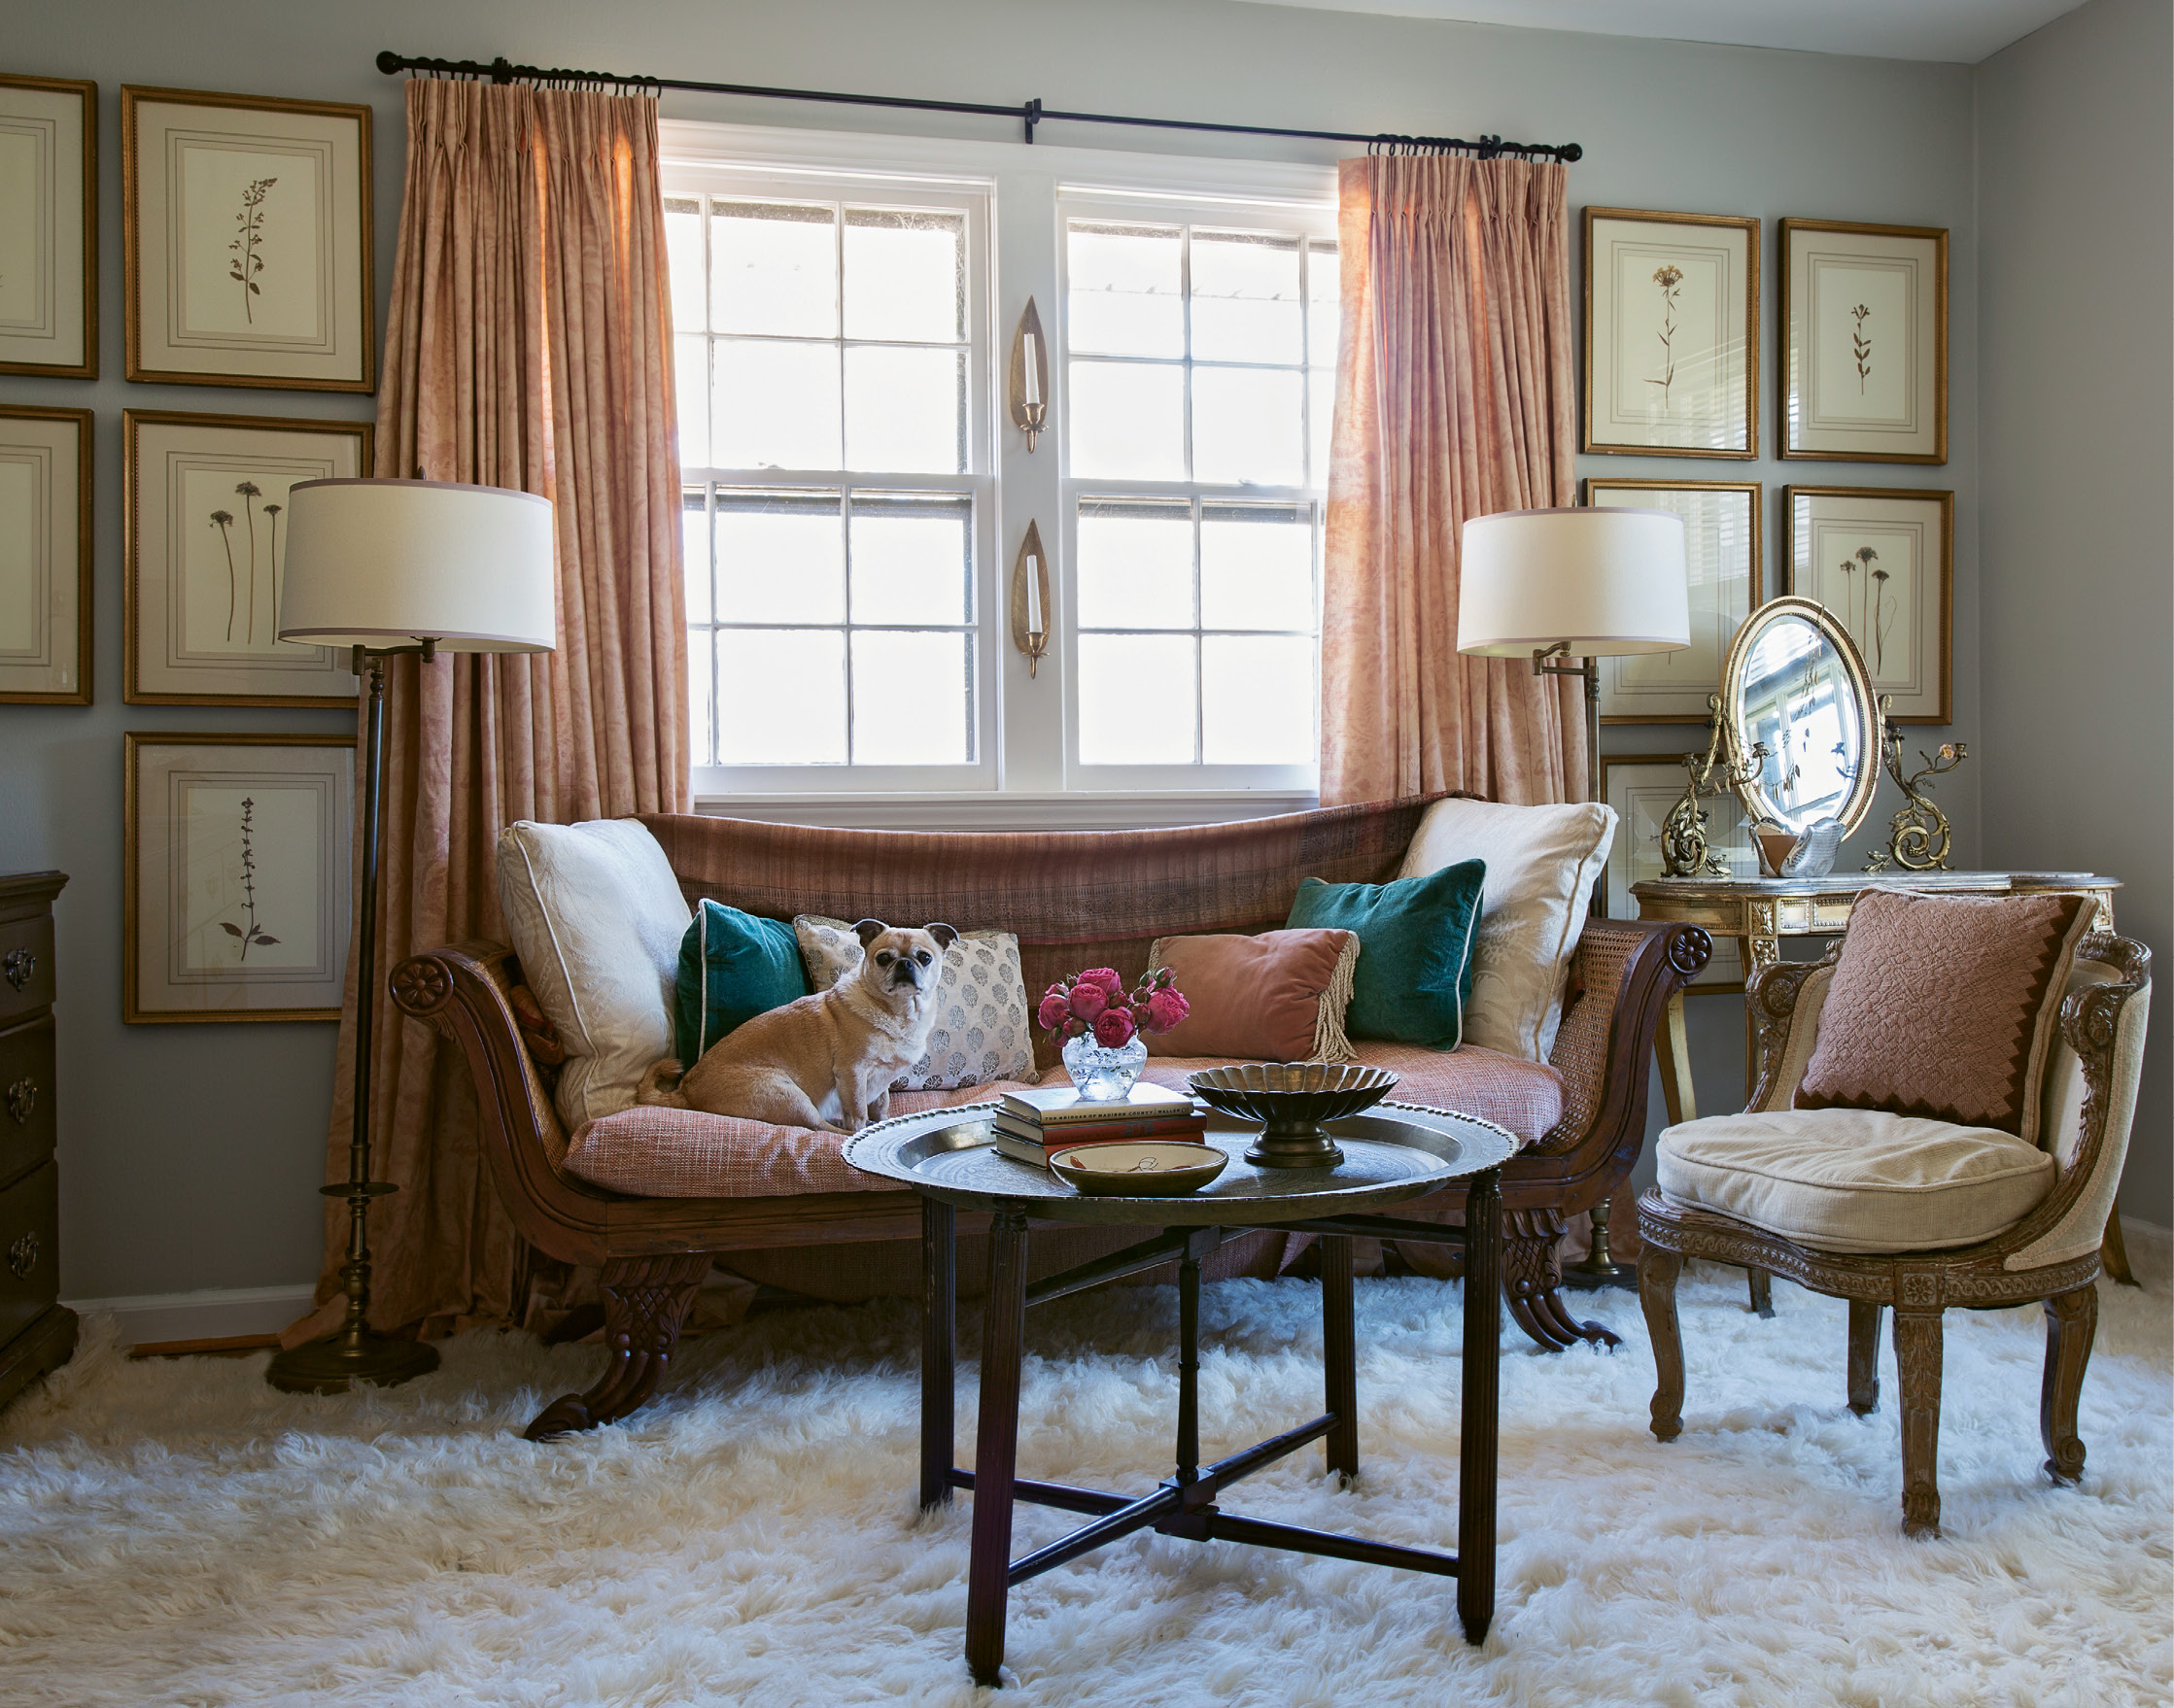 Lady's Lounge: A vintage Italian settee and textiles in dusty pinks and creams—with a few pops of peacock blue—set a ladylike tone in Tinkler's dressing room. On the wall, a large grouping of pressed botanicals in gilt frames adds a sense of dimension.